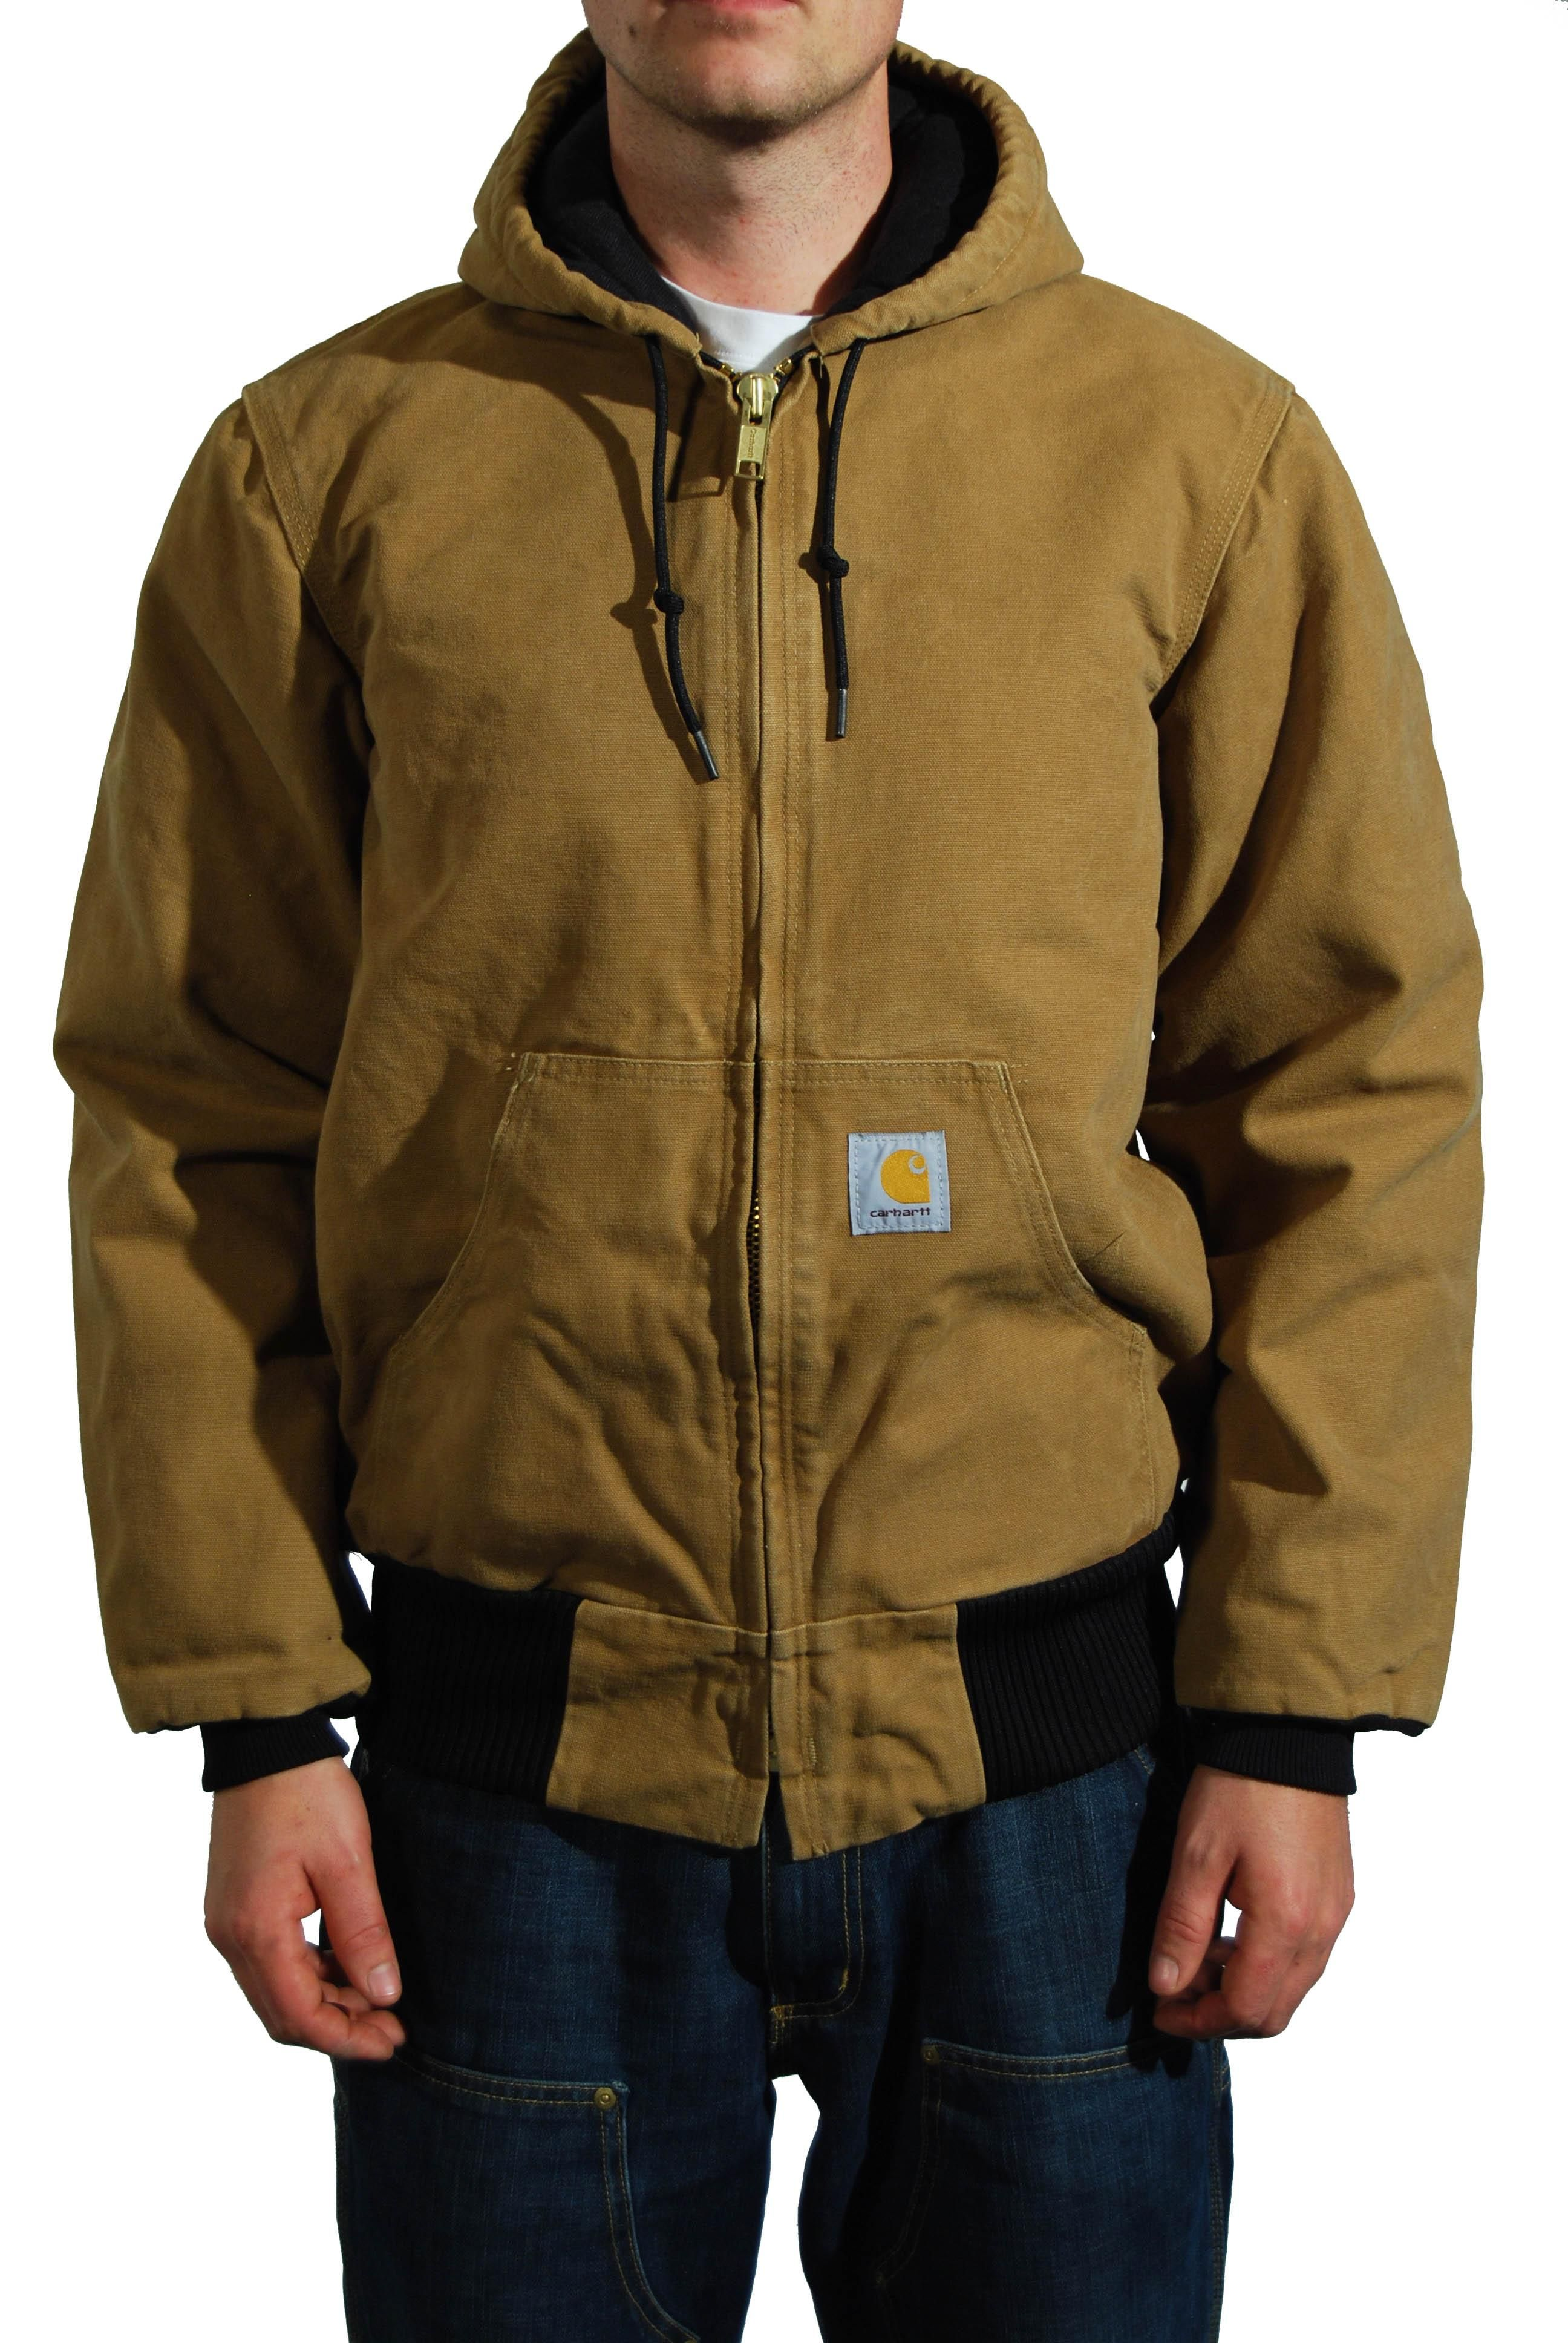 ab8e0f4e45086 #Carhartt #Workwear : Sandstone Active Jacket - find more on http://